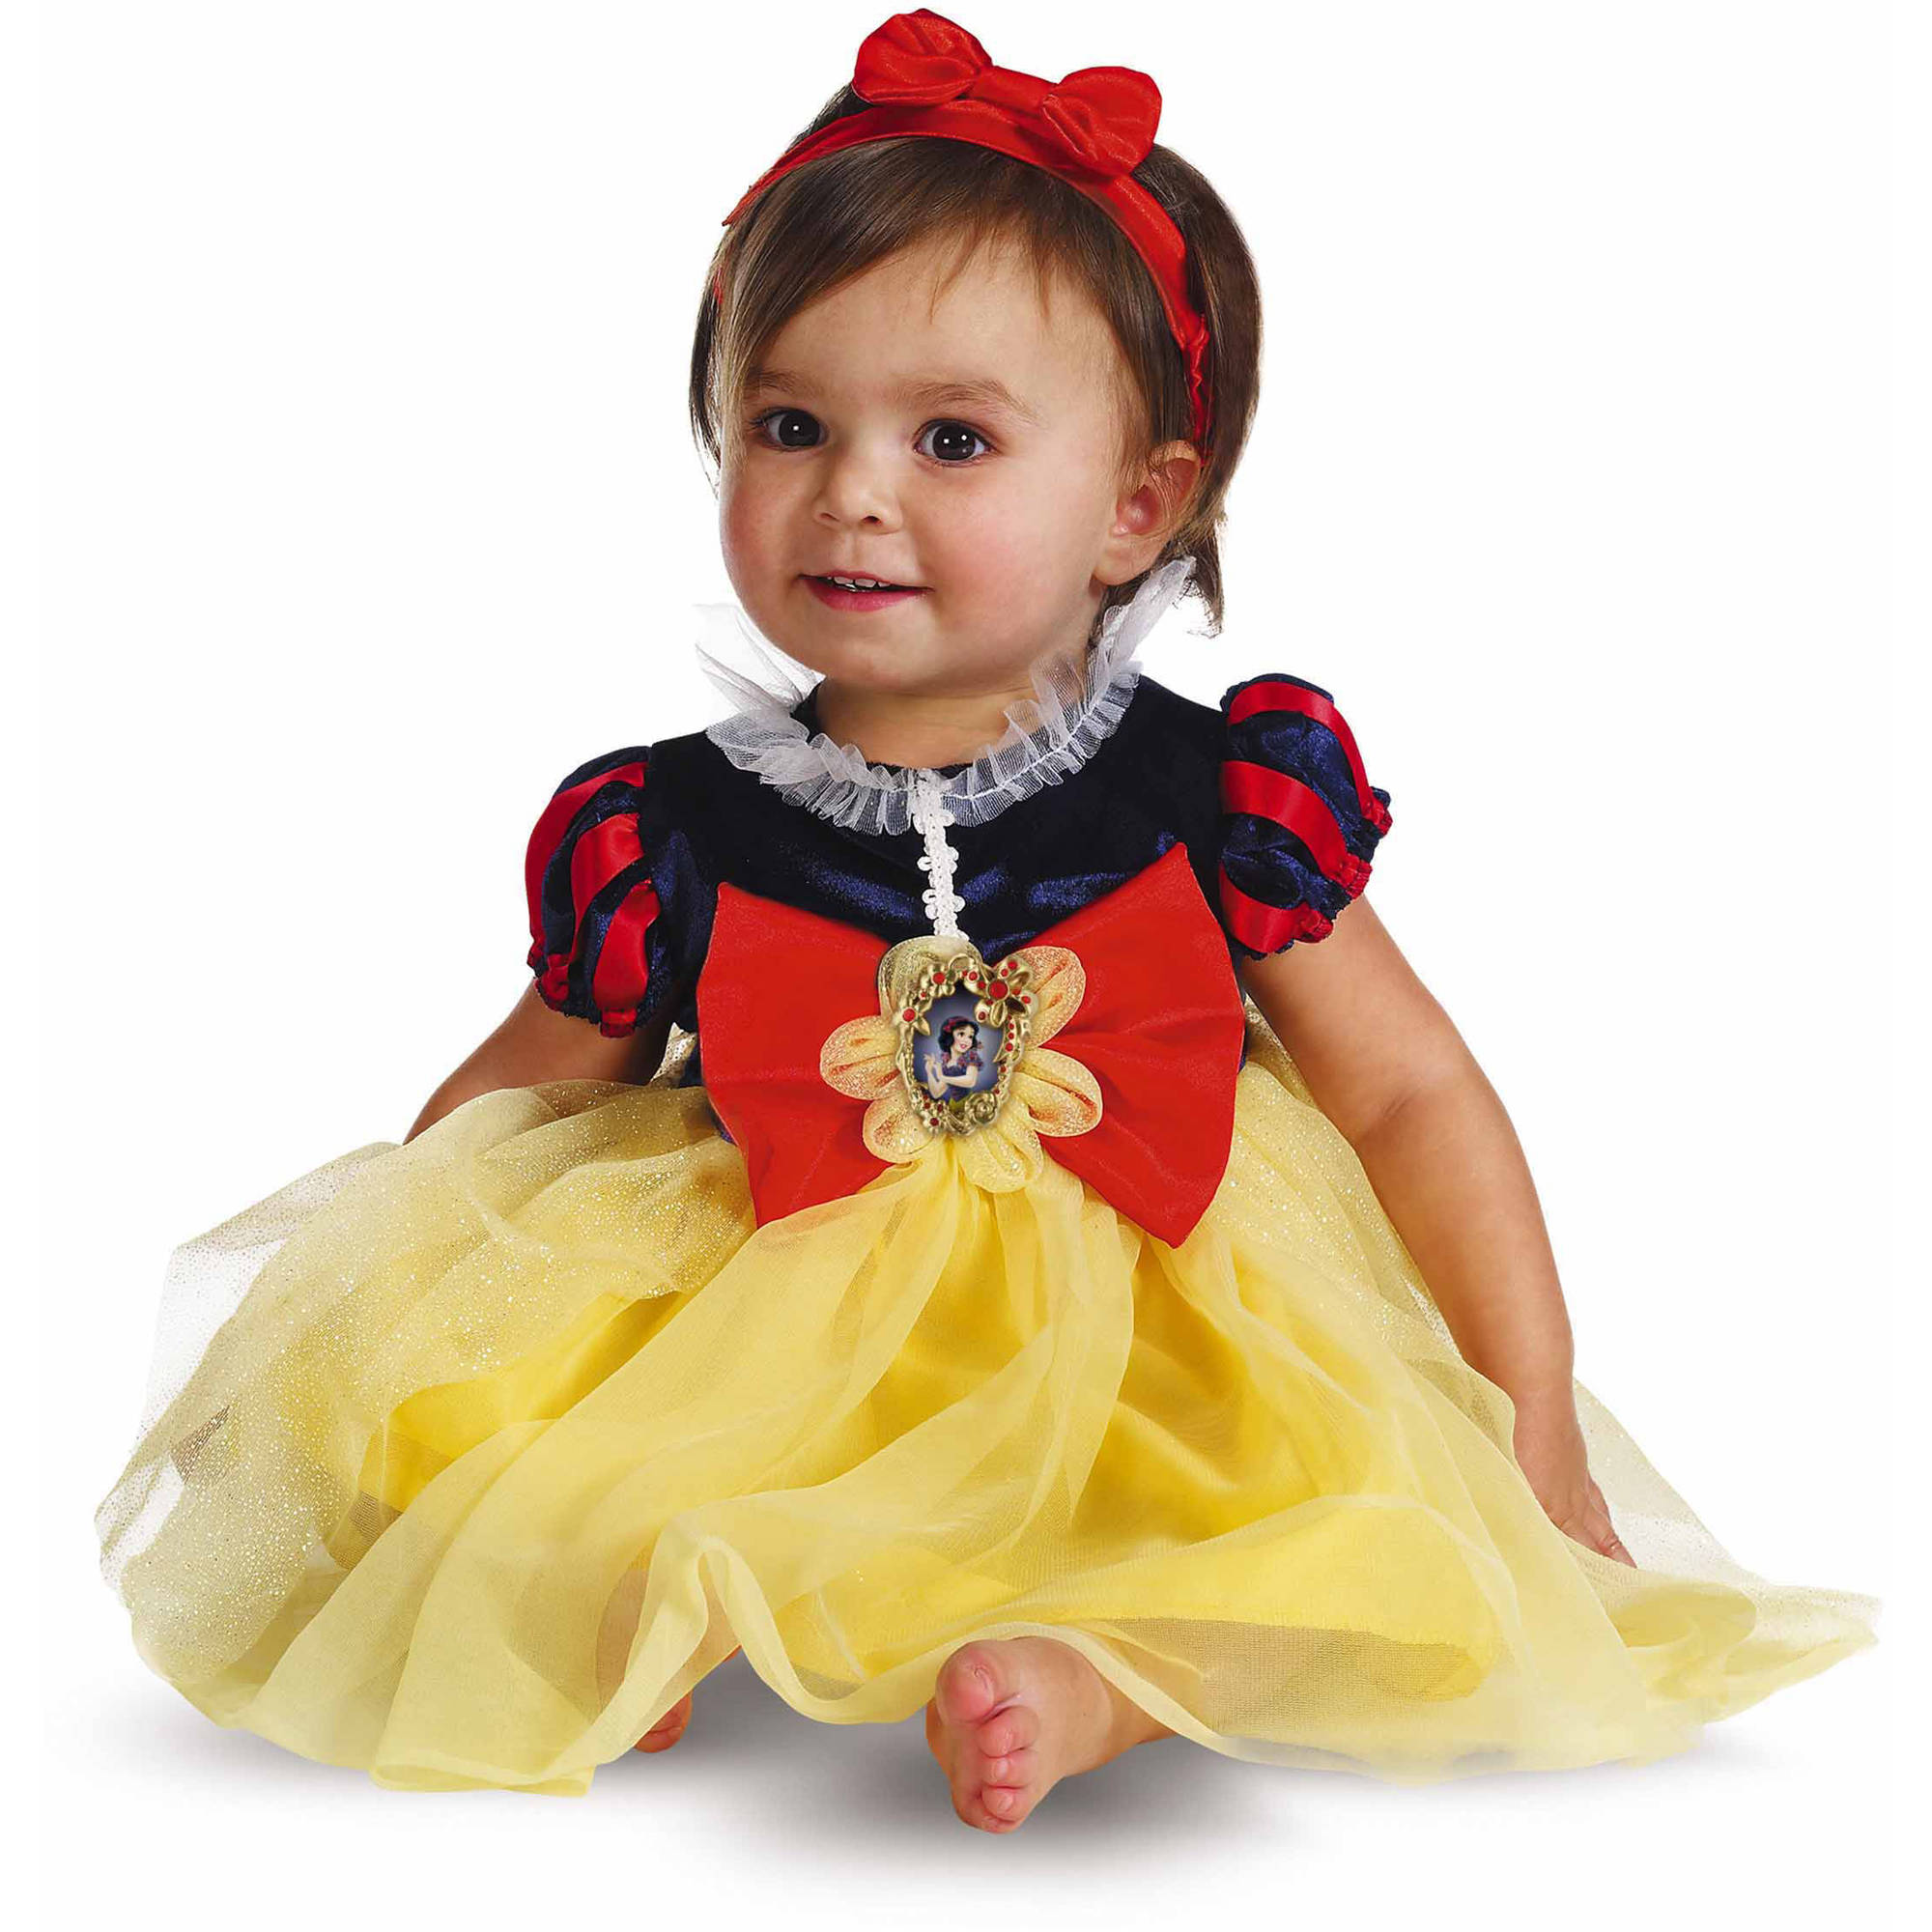 Snow White Deluxe Girls' Toddler Dress Up / Halloween Costume